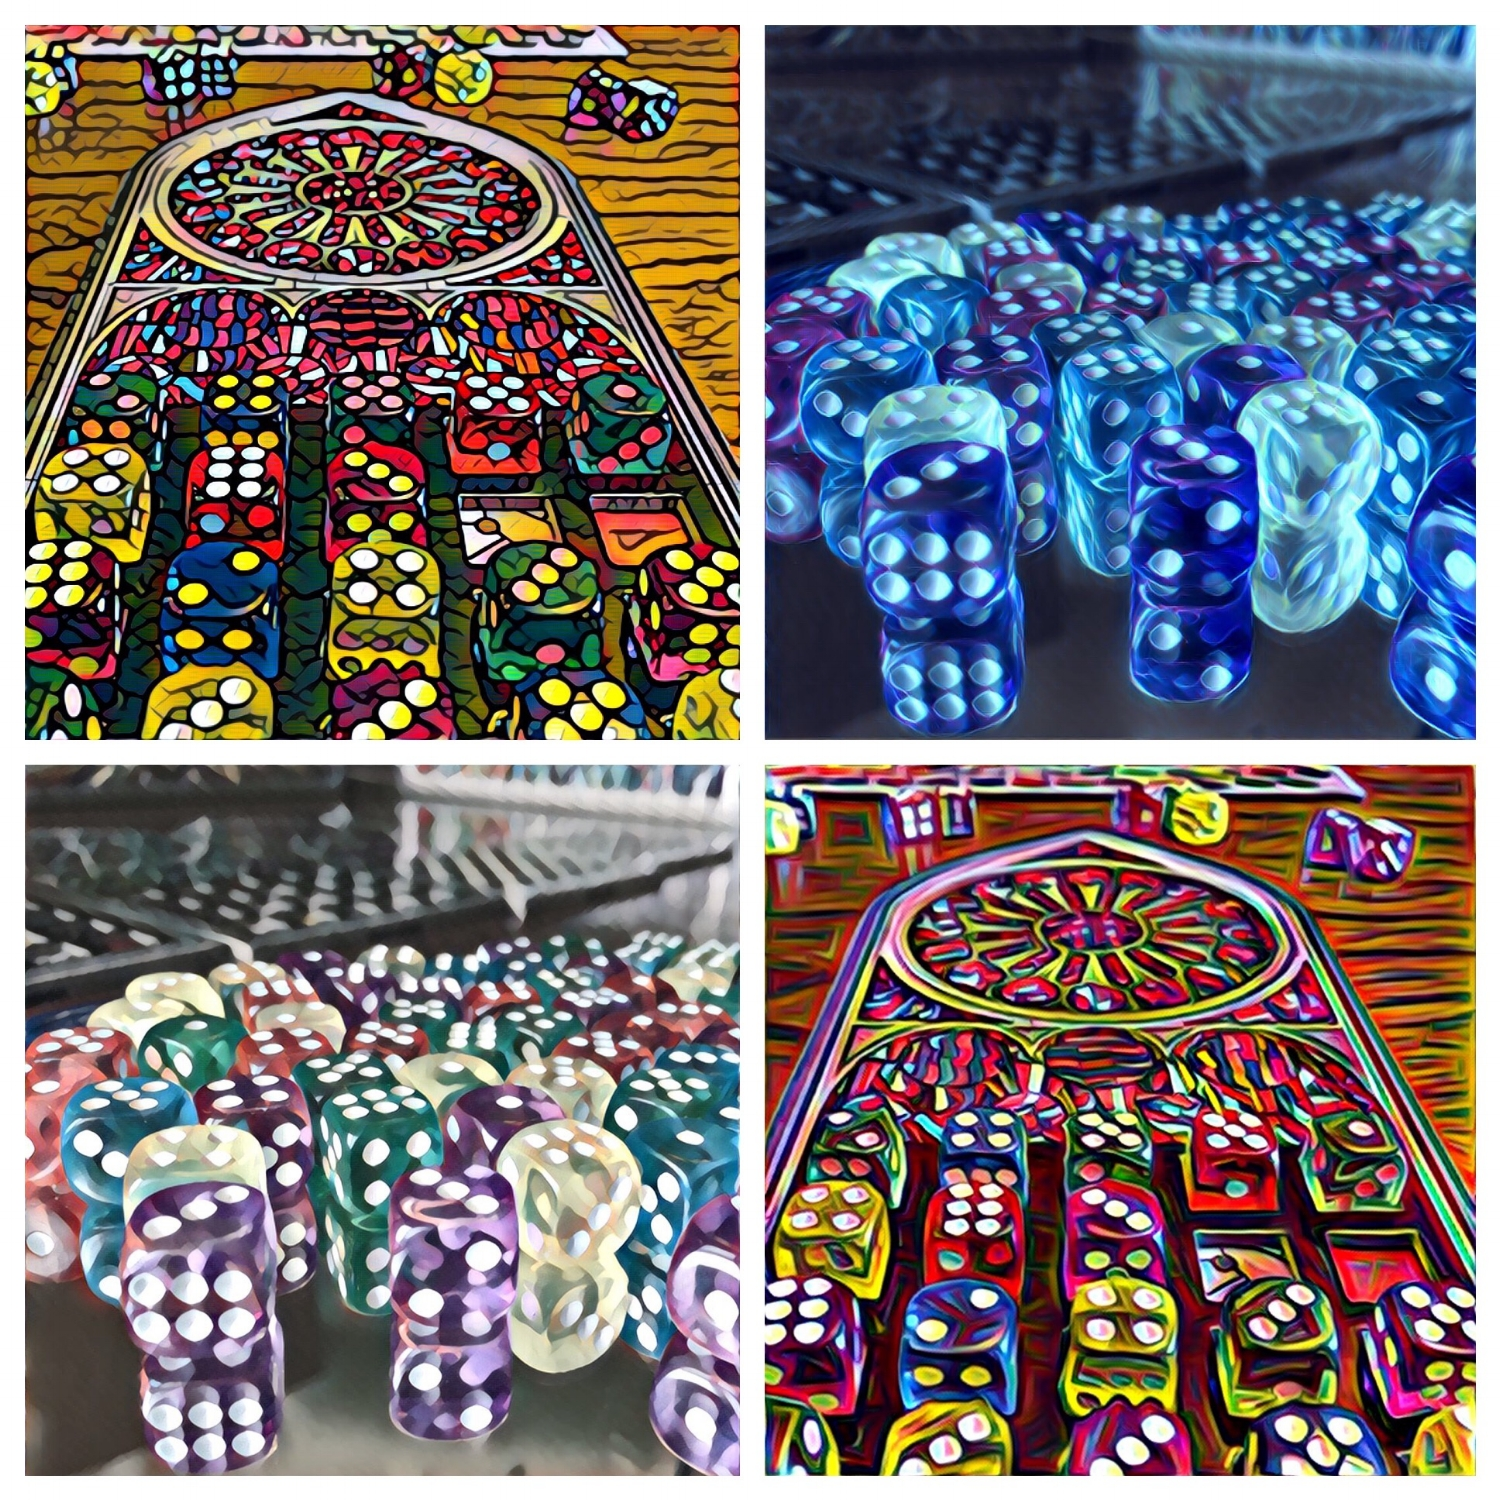 Why is Sagrada so beautiful? It's quite puzzling.